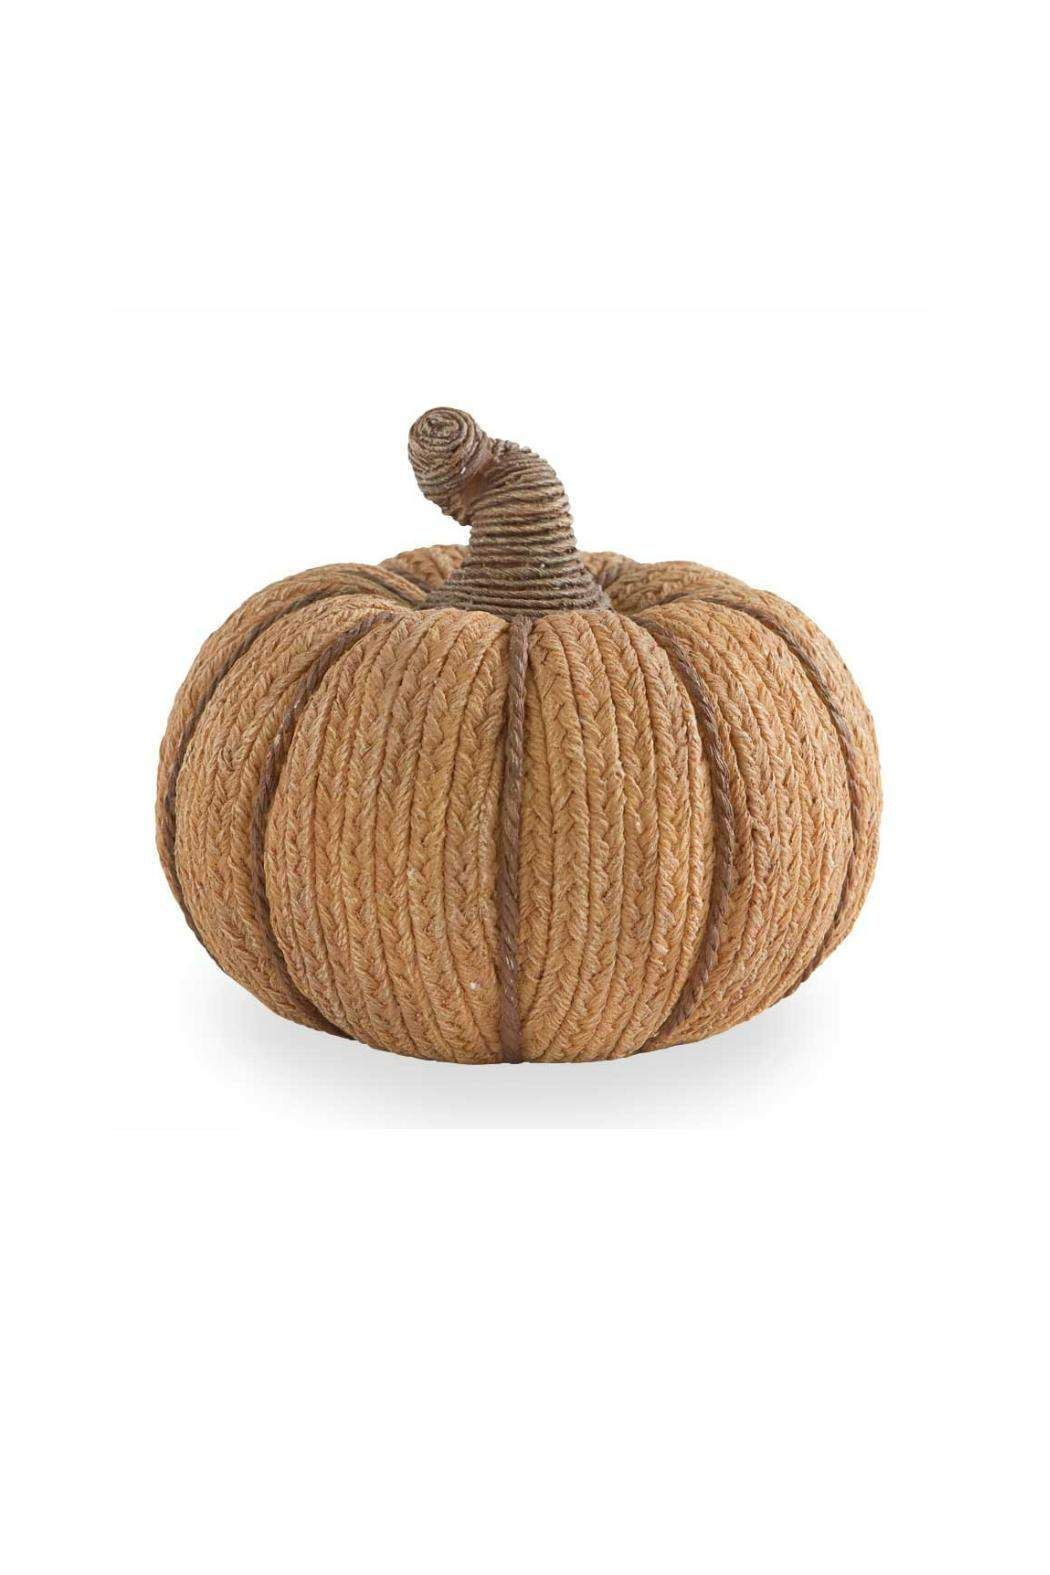 """Plush pumpkins formed of rustic cotton burlap and twine add an inviting textural element to fall displays.    Dimensions:5.5"""" H x 6"""" Dia.   Burlap & Twine Pumpkin by K&K Interiors. Home & Gifts - Home Decor - Decorative Objects South Carolina"""